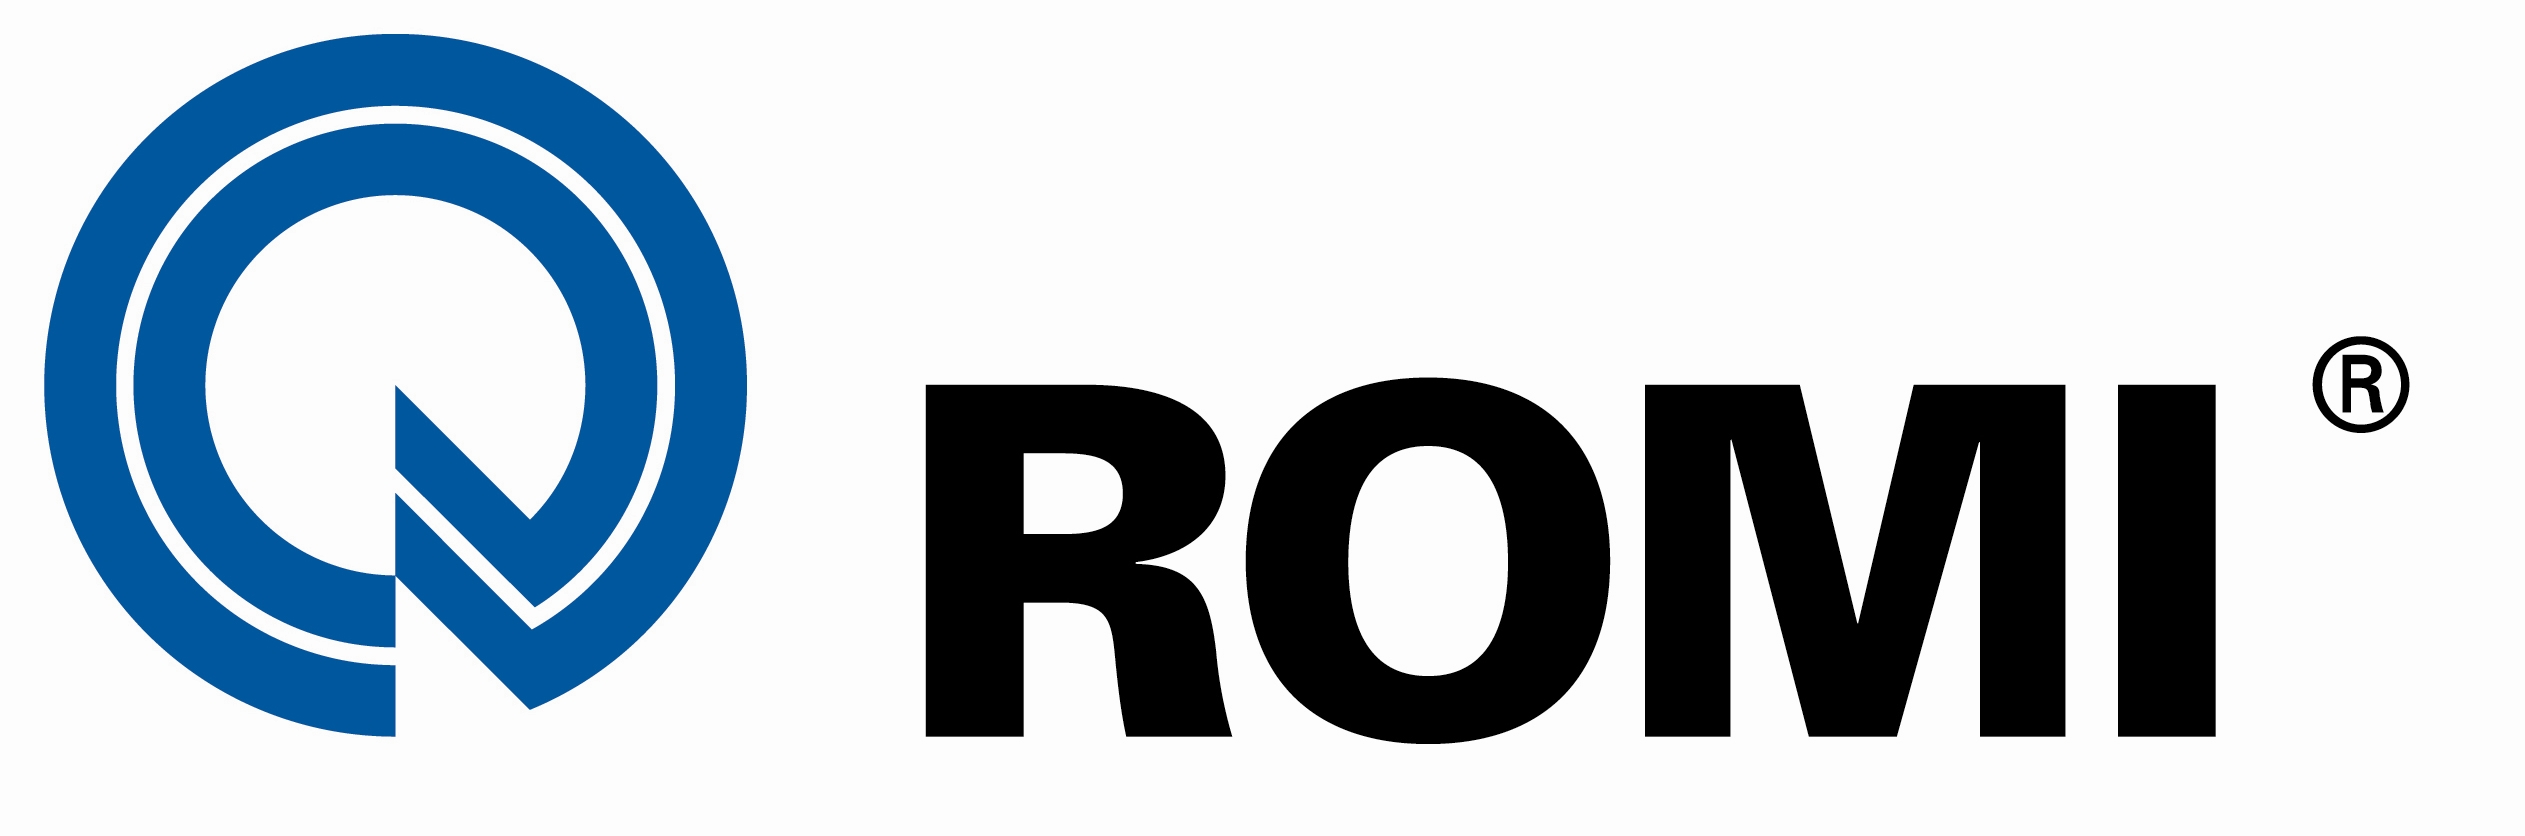 Romi brings its robust and multipurpose products